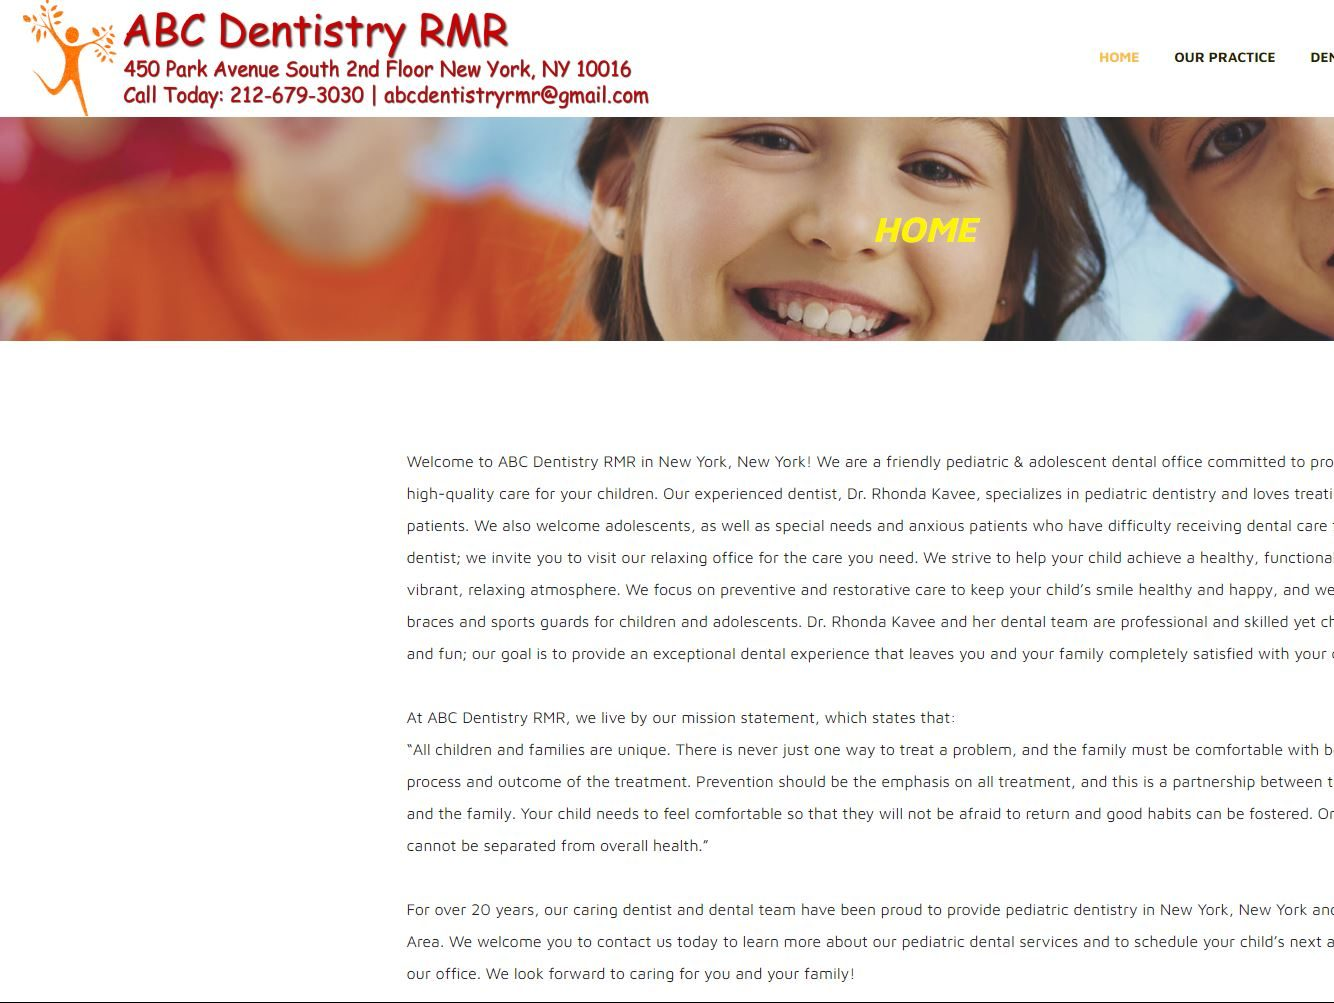 ABC Dentistry RMR